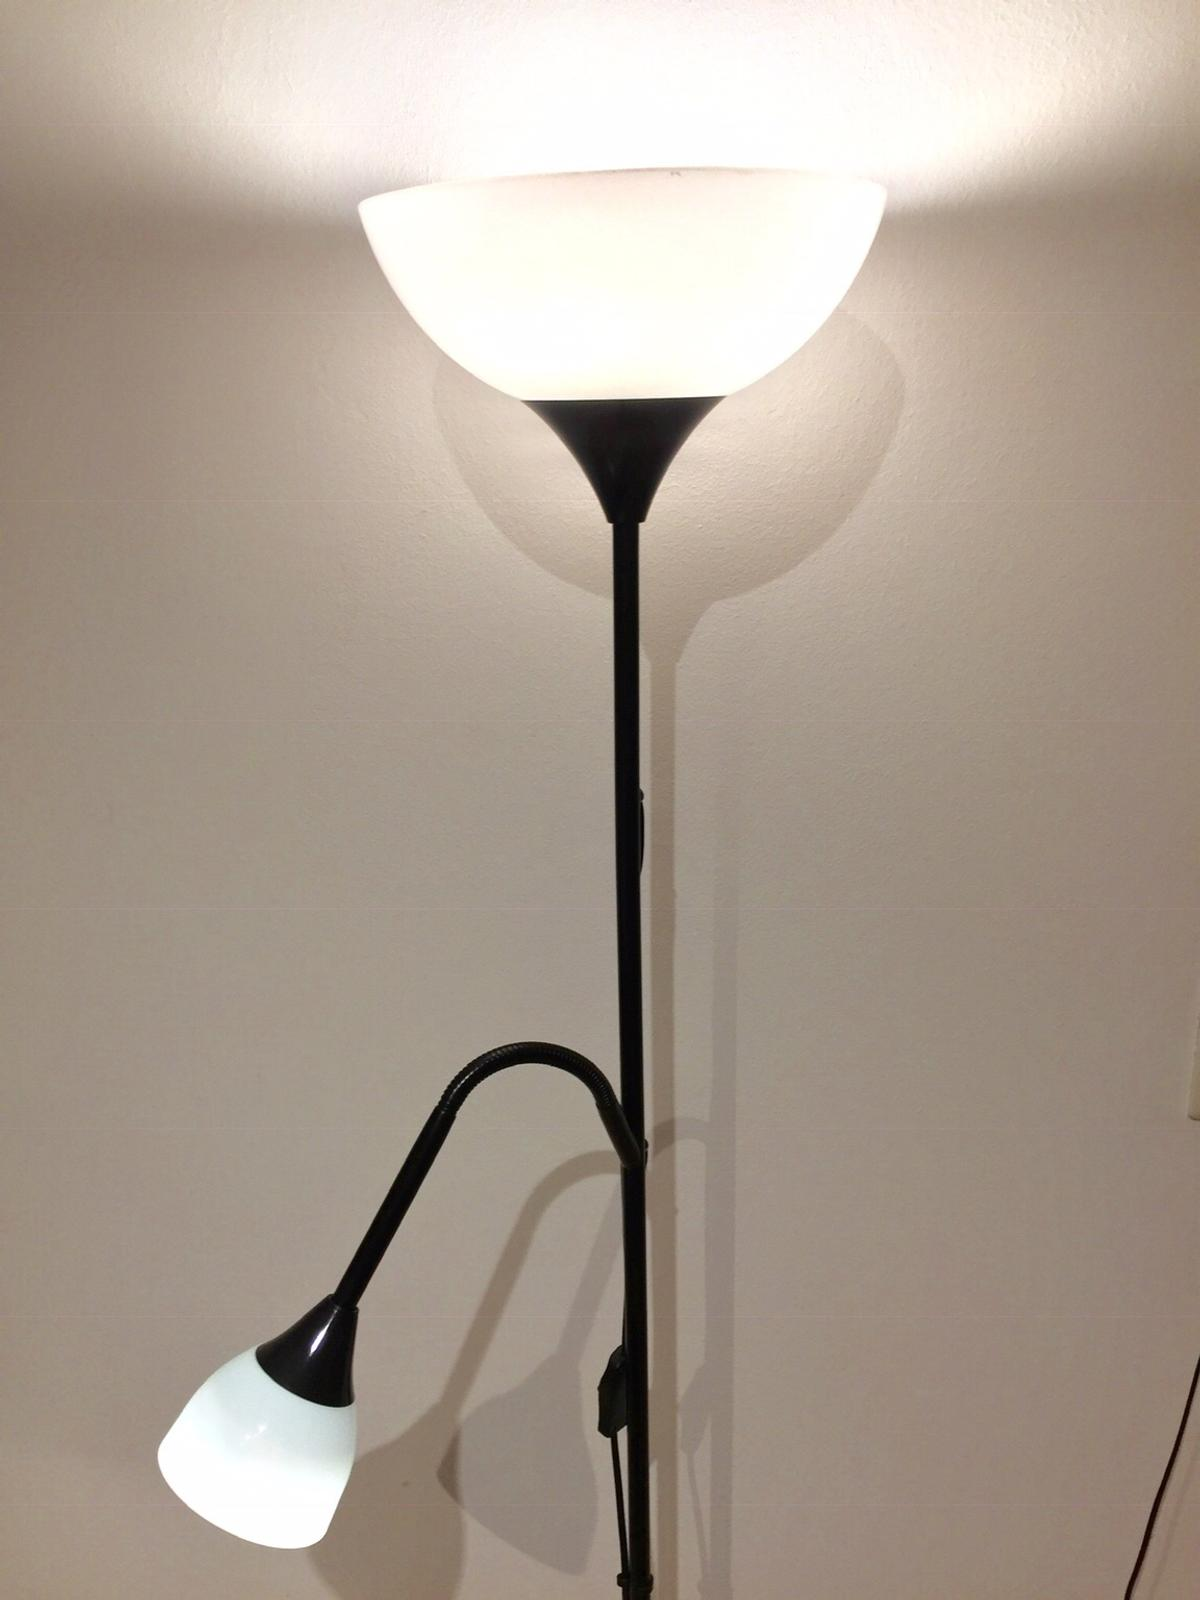 Ikea Stehlampe Mit Leselampe In 6330 Kufstein For 5 00 For Sale